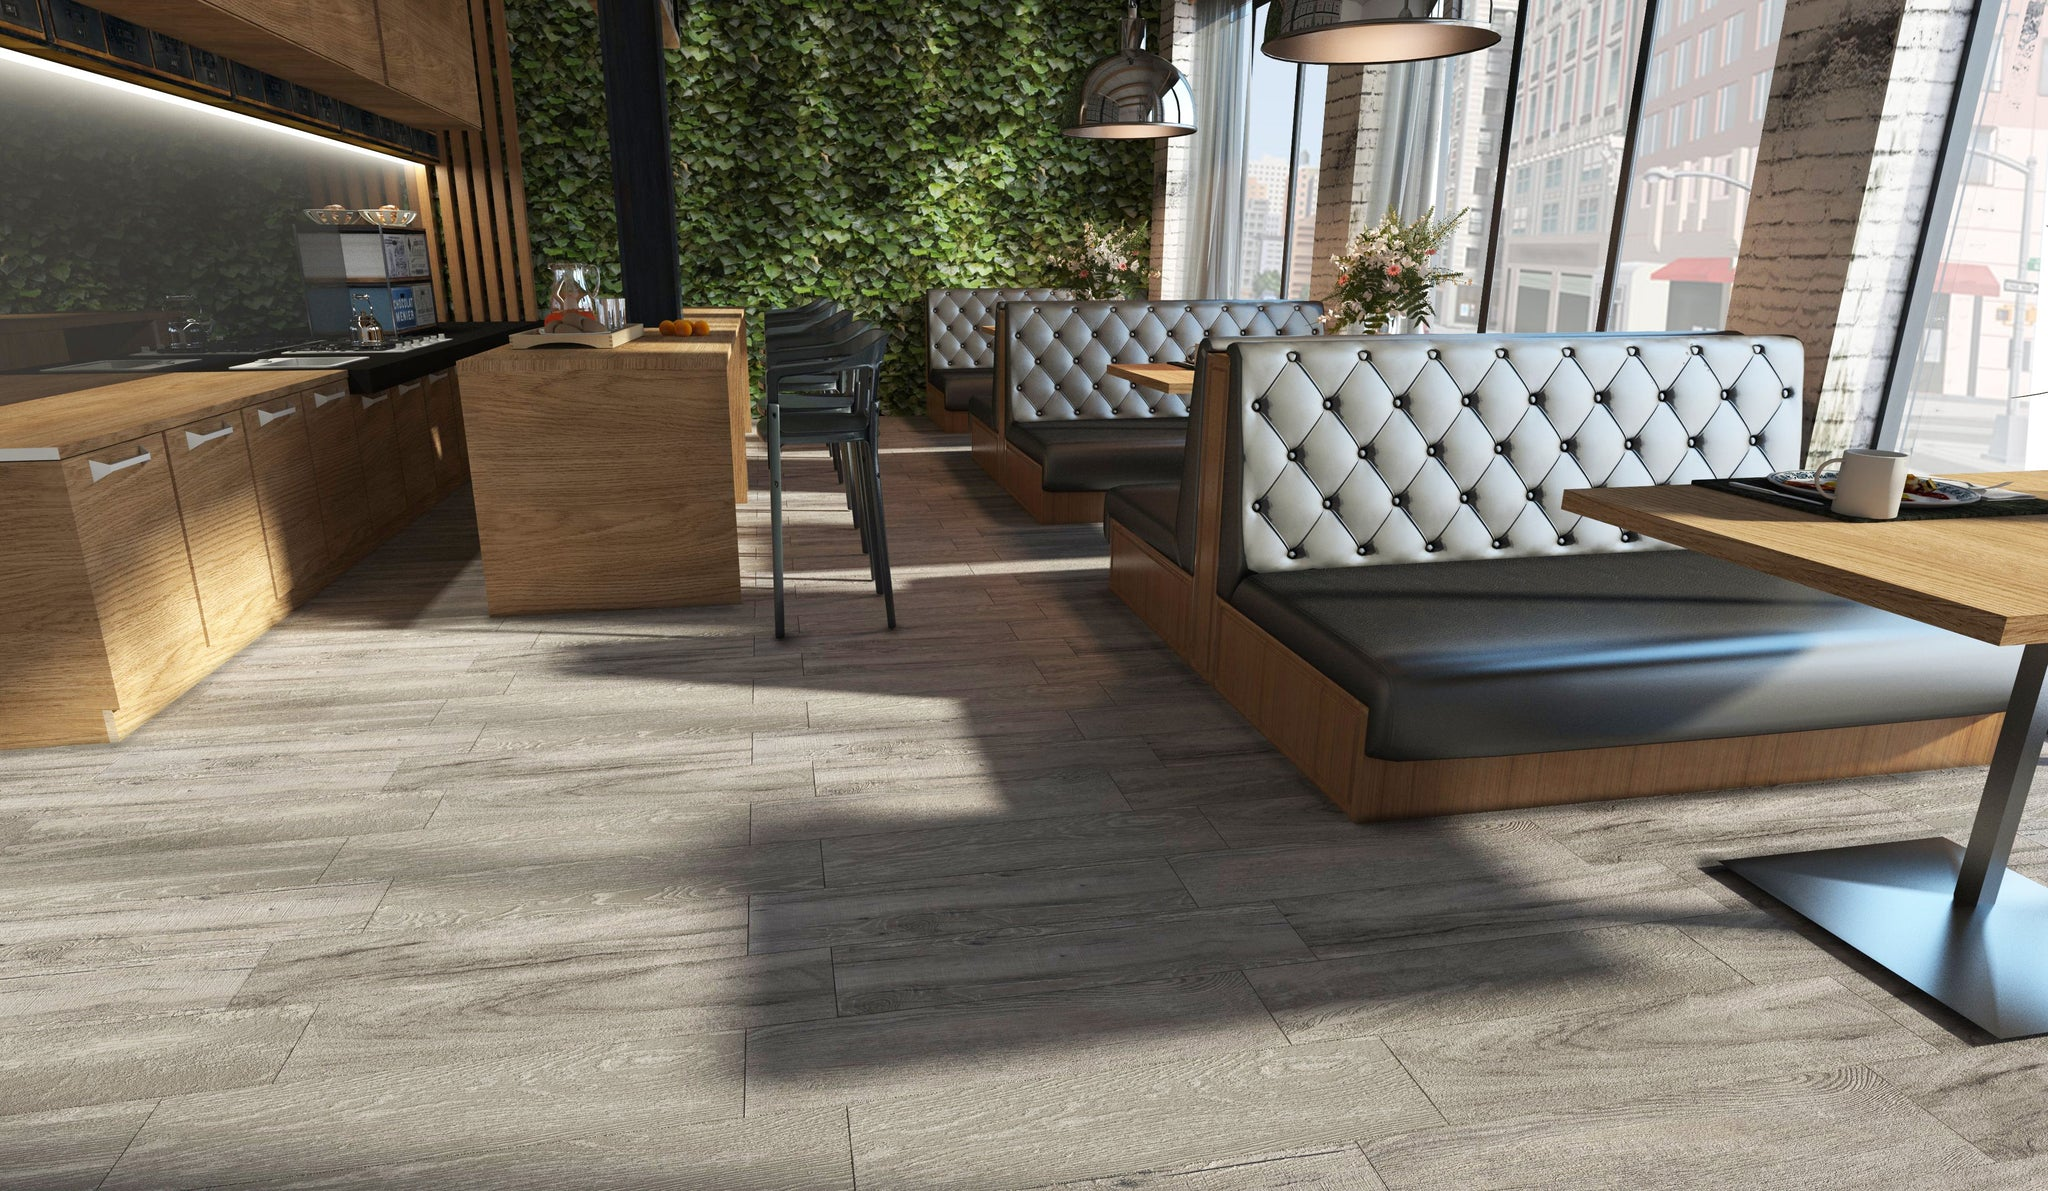 Beach Wood Floor/Wall Tile